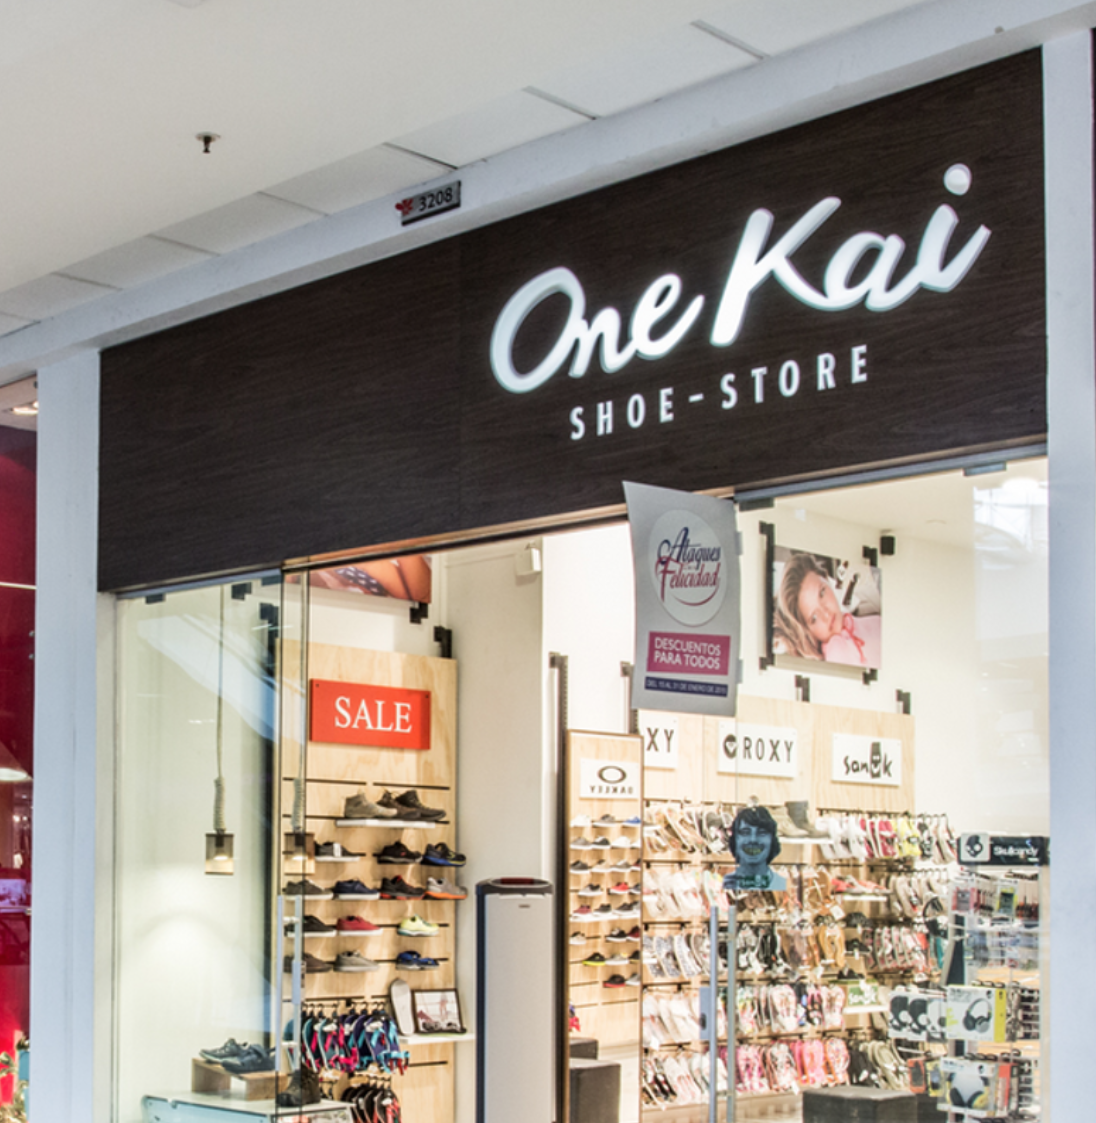 ONE KAI SHOE STORE